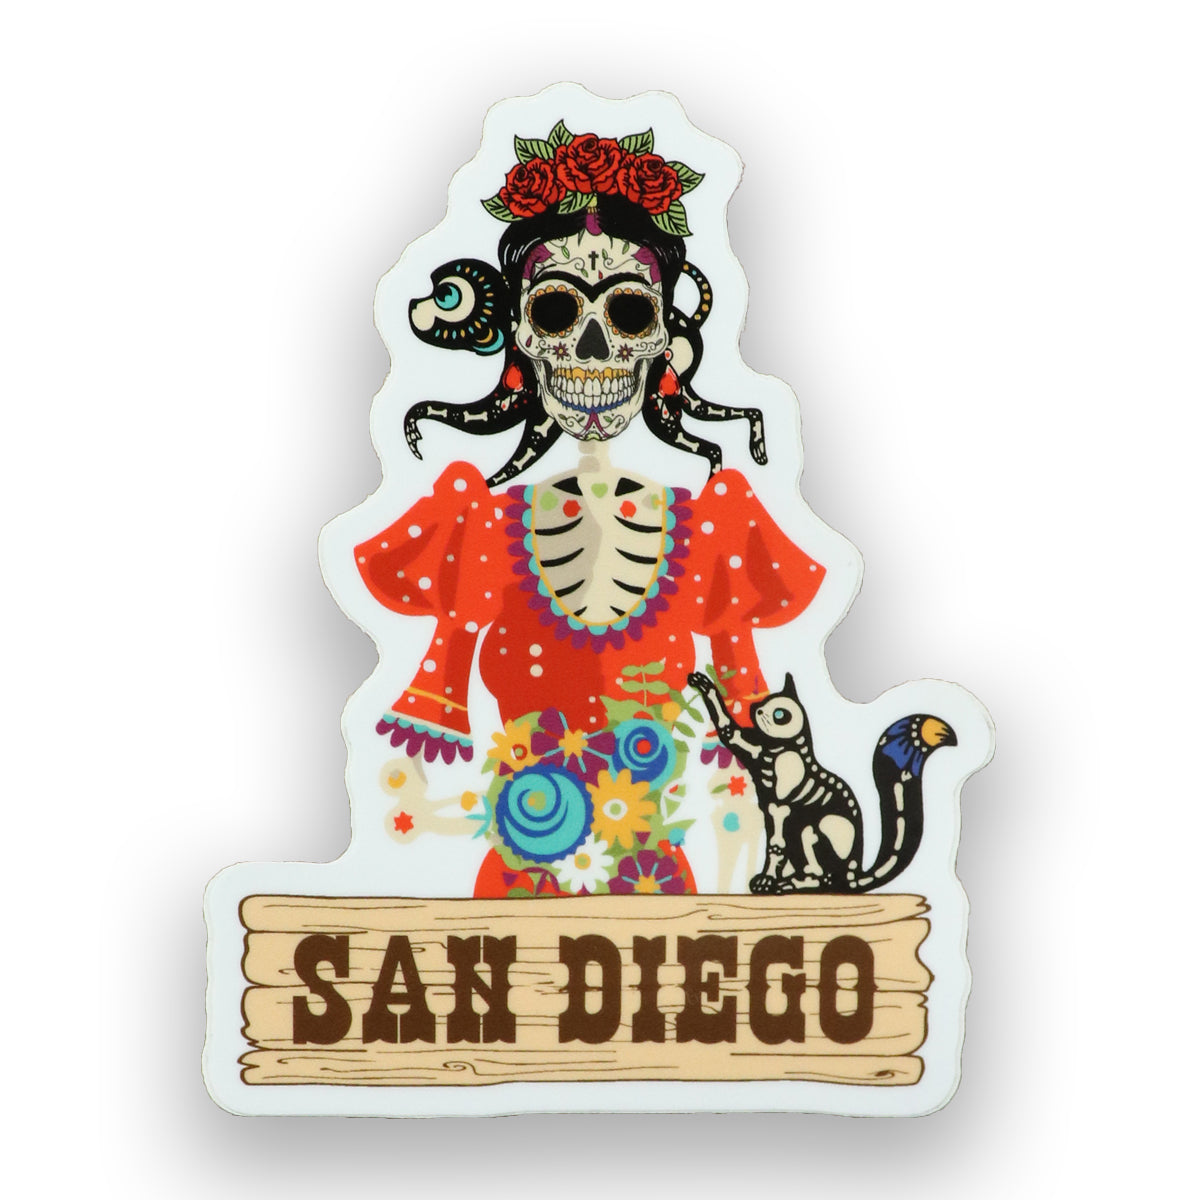 Frida Kahlo Sticker features Catrina skull with red rosses crown, and traditional Mexican dress in color red. A Black cat with see through skeleton, standing on a wooden blank with capital brown letters in caps SAN DIEGO. Sold by SDTrading Co.